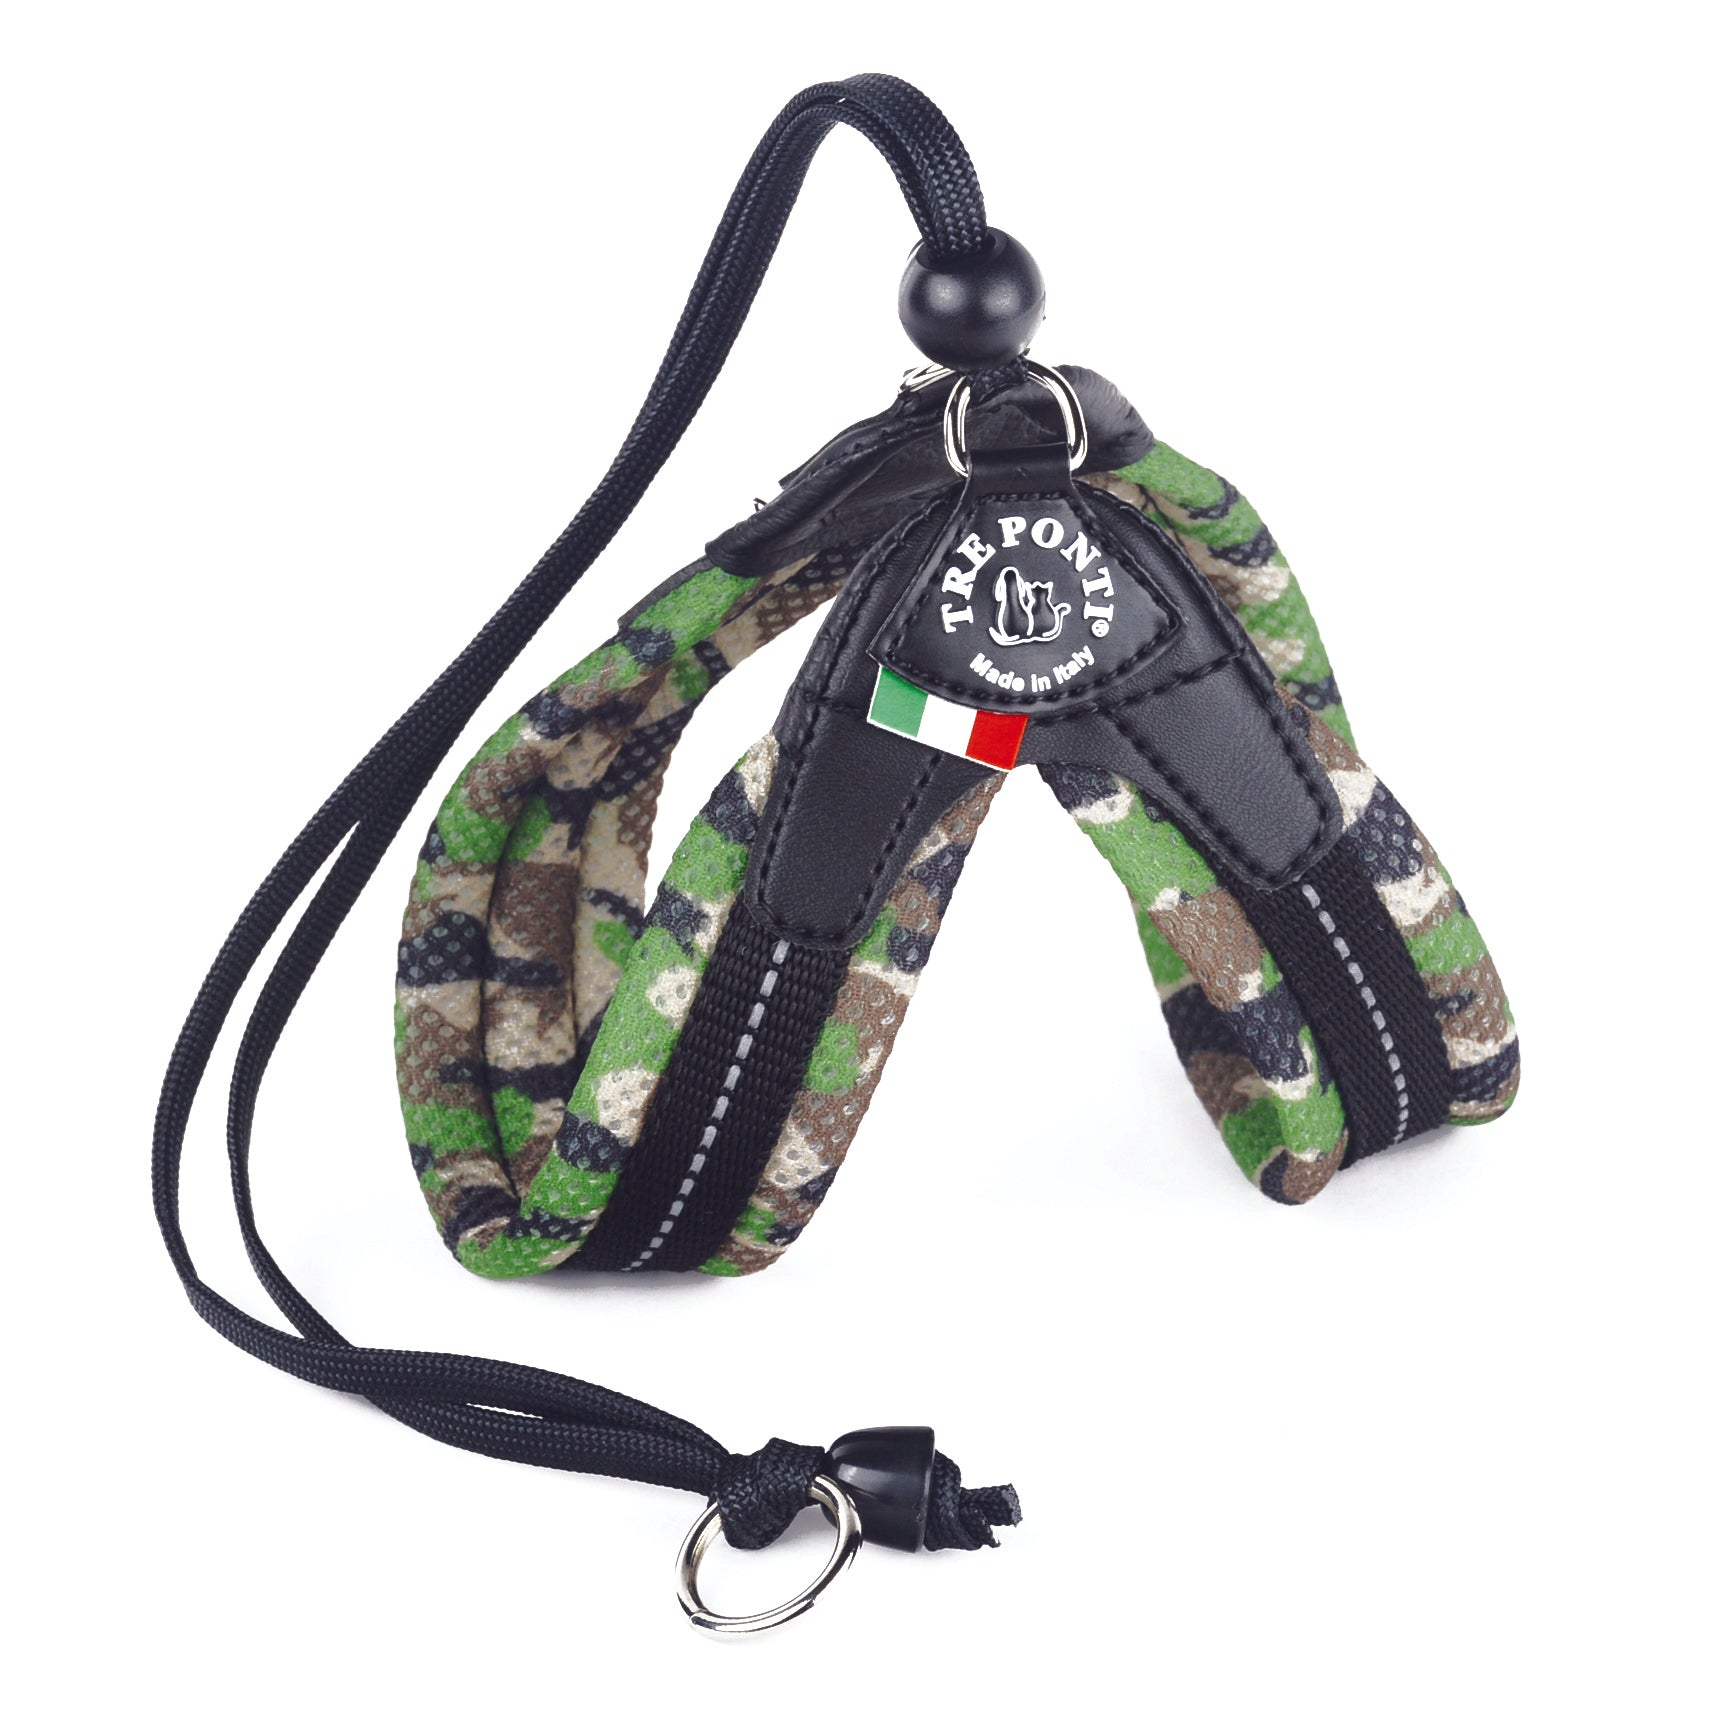 Easy Fit Breathable Mesh Harness with Adjustable Strap  Closure Green Camouflage